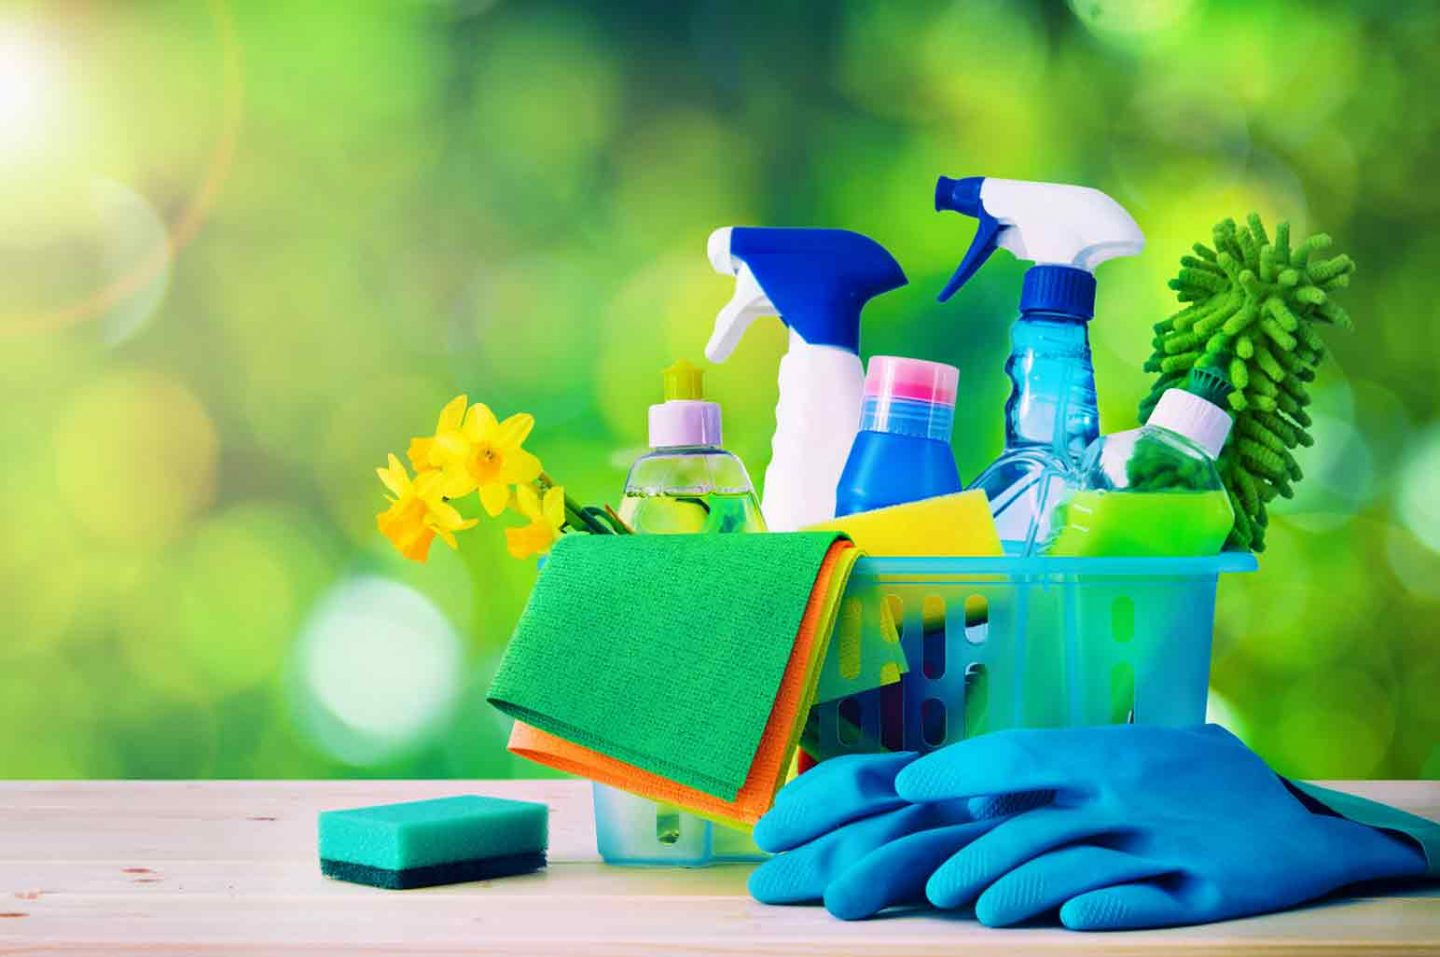 Cleaning Supplies Needed to Clean a House